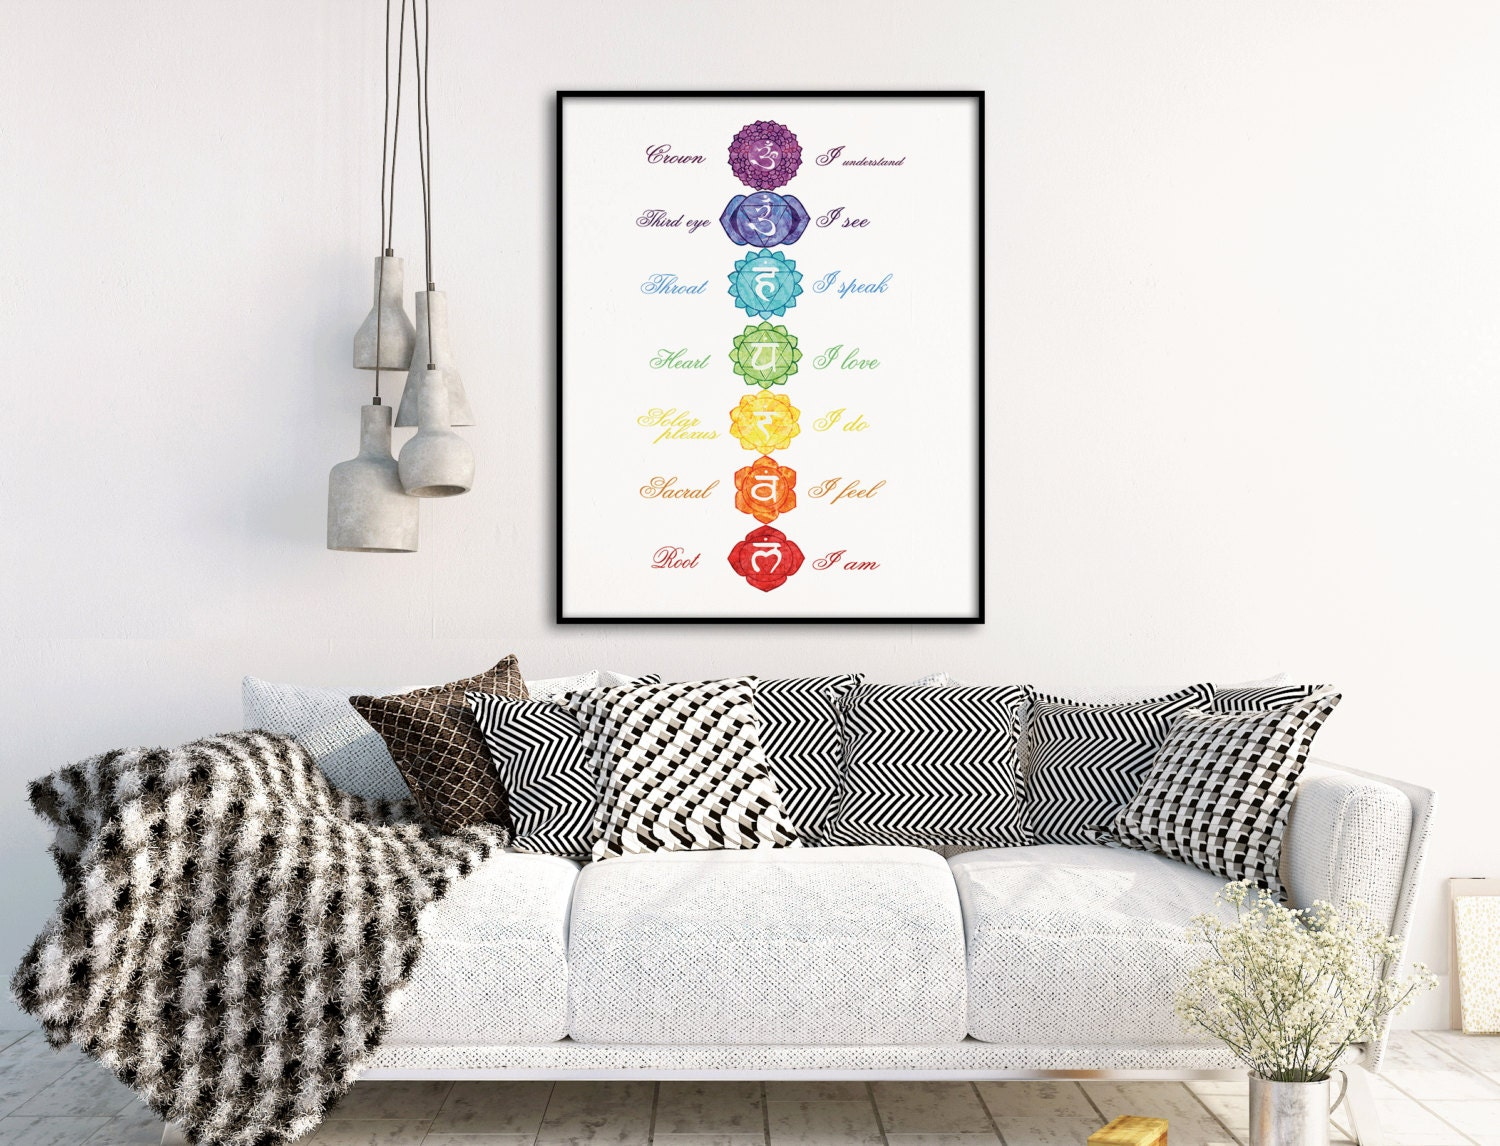 Meditation Decor Inspiration Chakra Meditation Wall Art Chakra Print Yoga Studio Decor Design Ideas